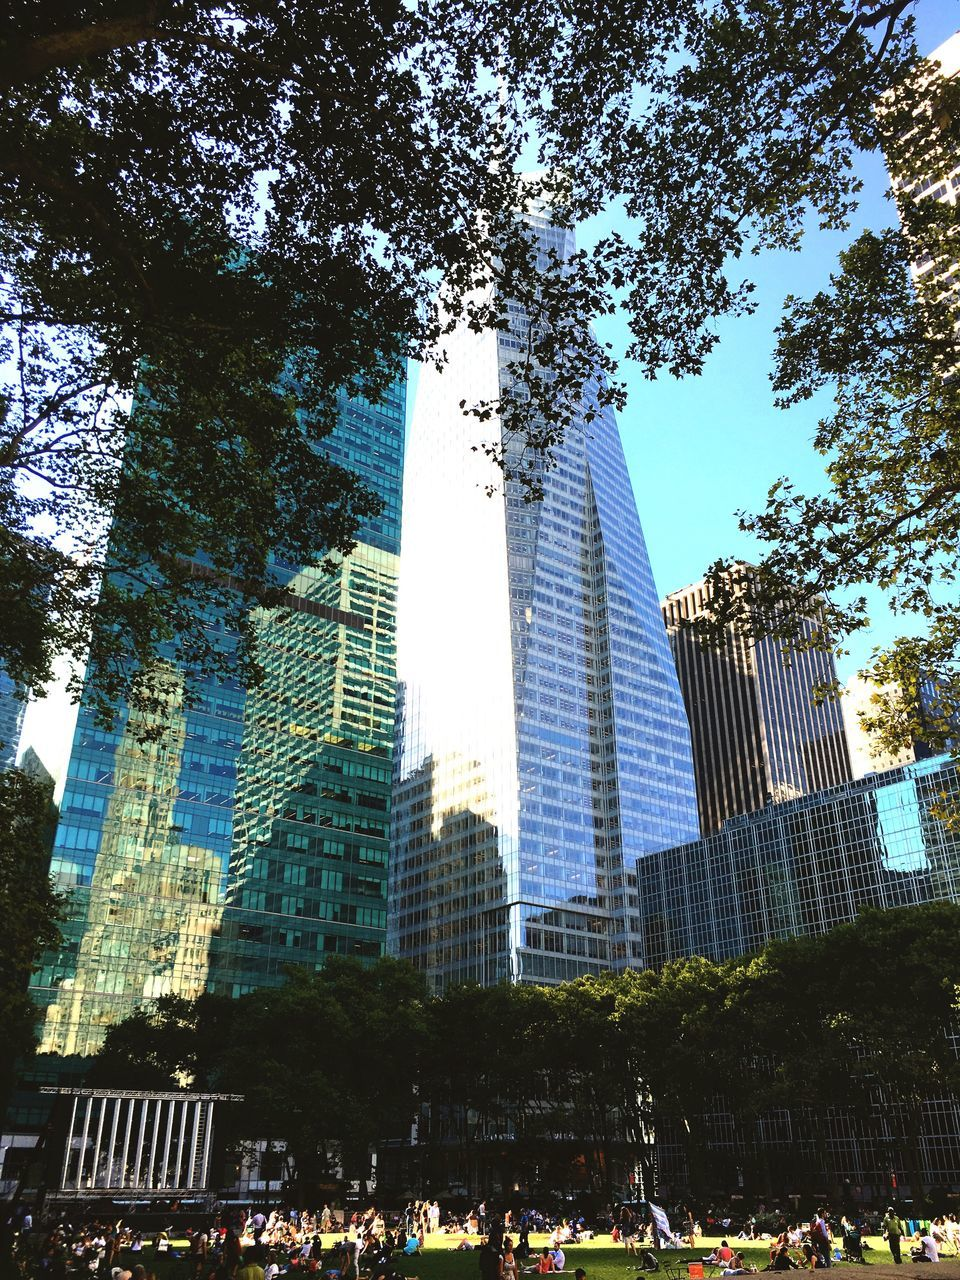 architecture, built structure, tree, building exterior, skyscraper, tall - high, low angle view, modern, day, travel destinations, growth, city, outdoors, sky, large group of people, real people, people